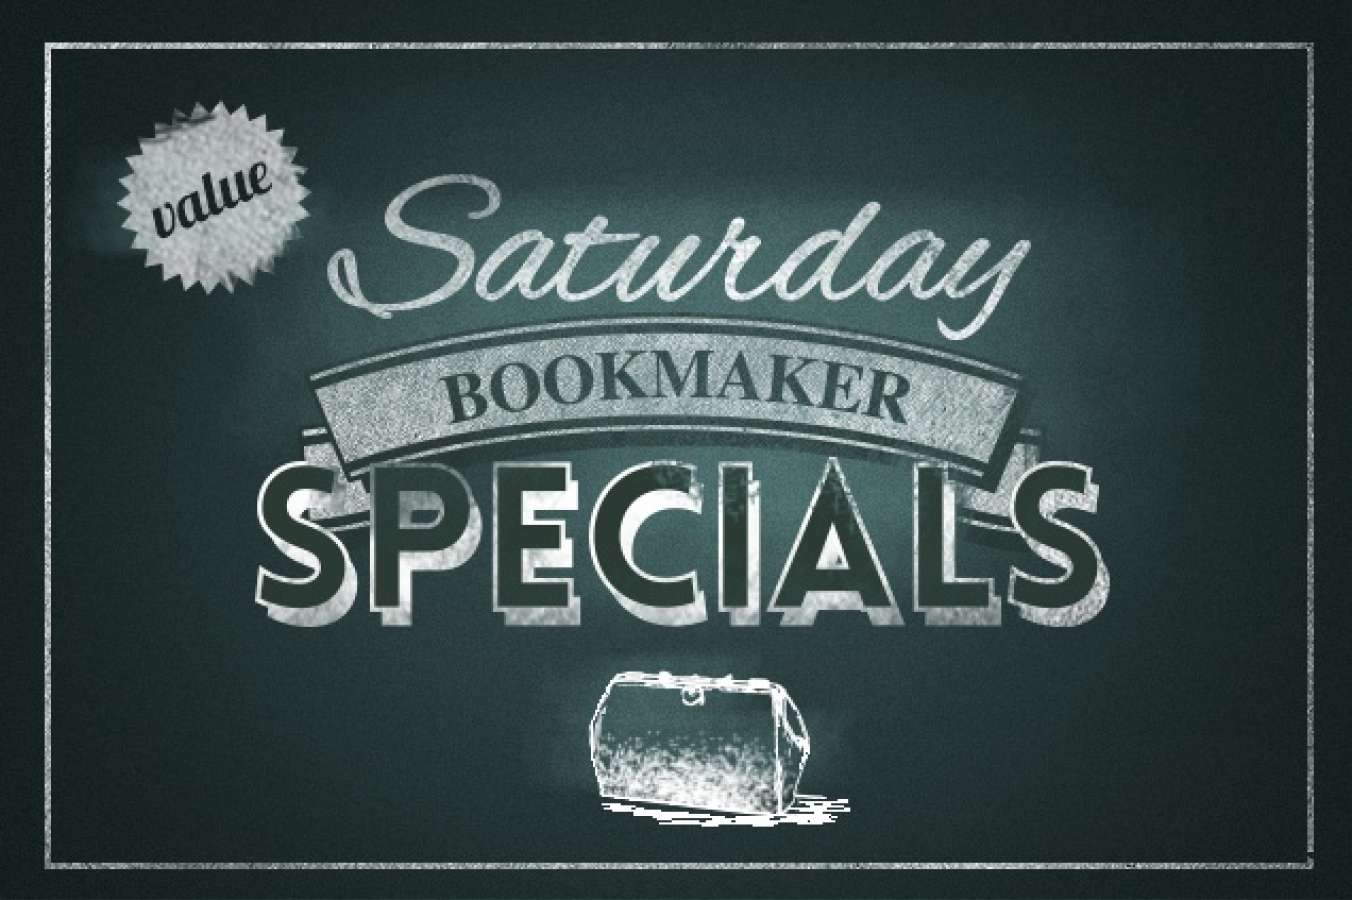 Weekend bookie specials